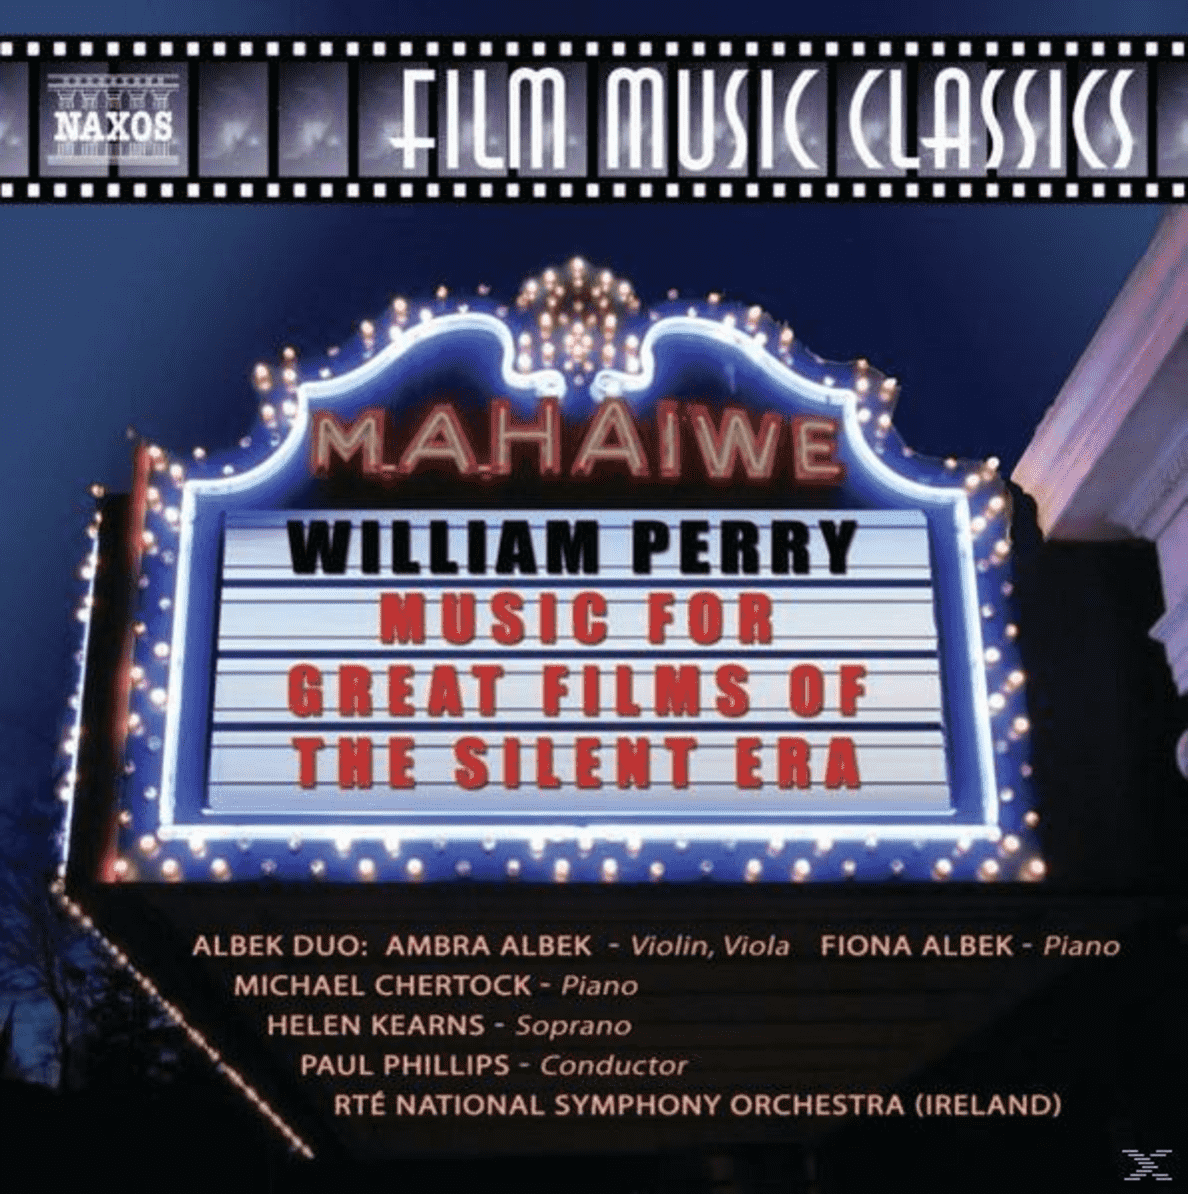 Music for Great Films of the Silent Era Phillips & Rte National Symphony, Phillips/Rte National Symphony Orchestra auf CD